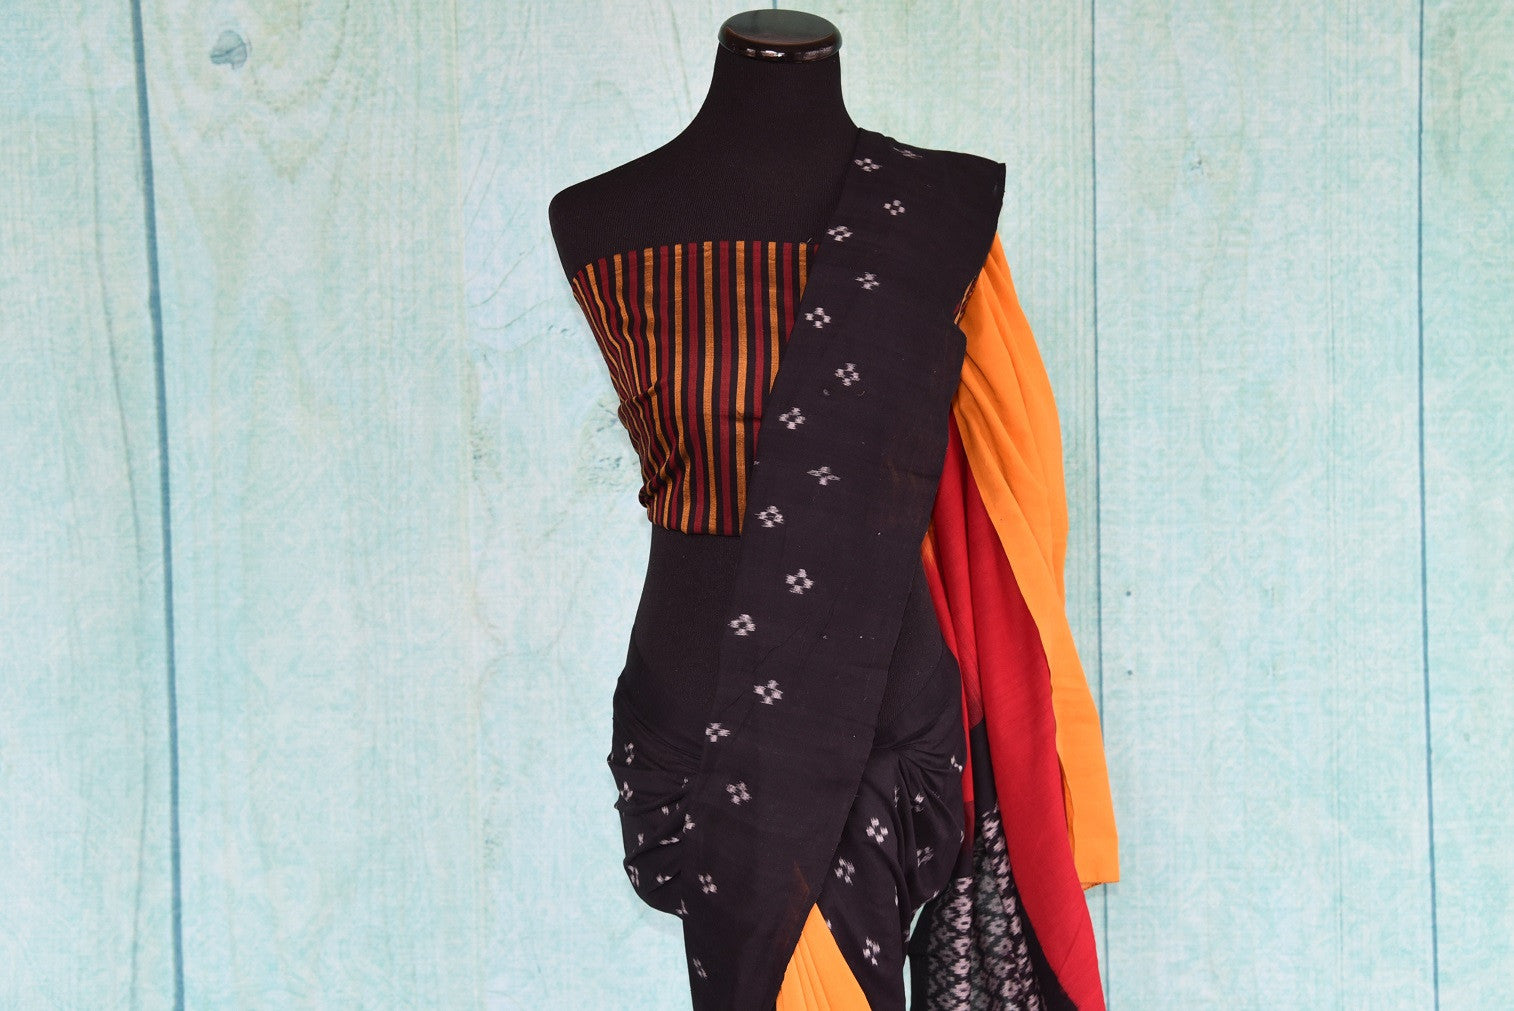 90D434 Eye-catching saree with traditional Indian design. The black cotton ikkat saree has pops of red and yellow and can be bought at our Indian clothing store online in USA - Pure Elegance.